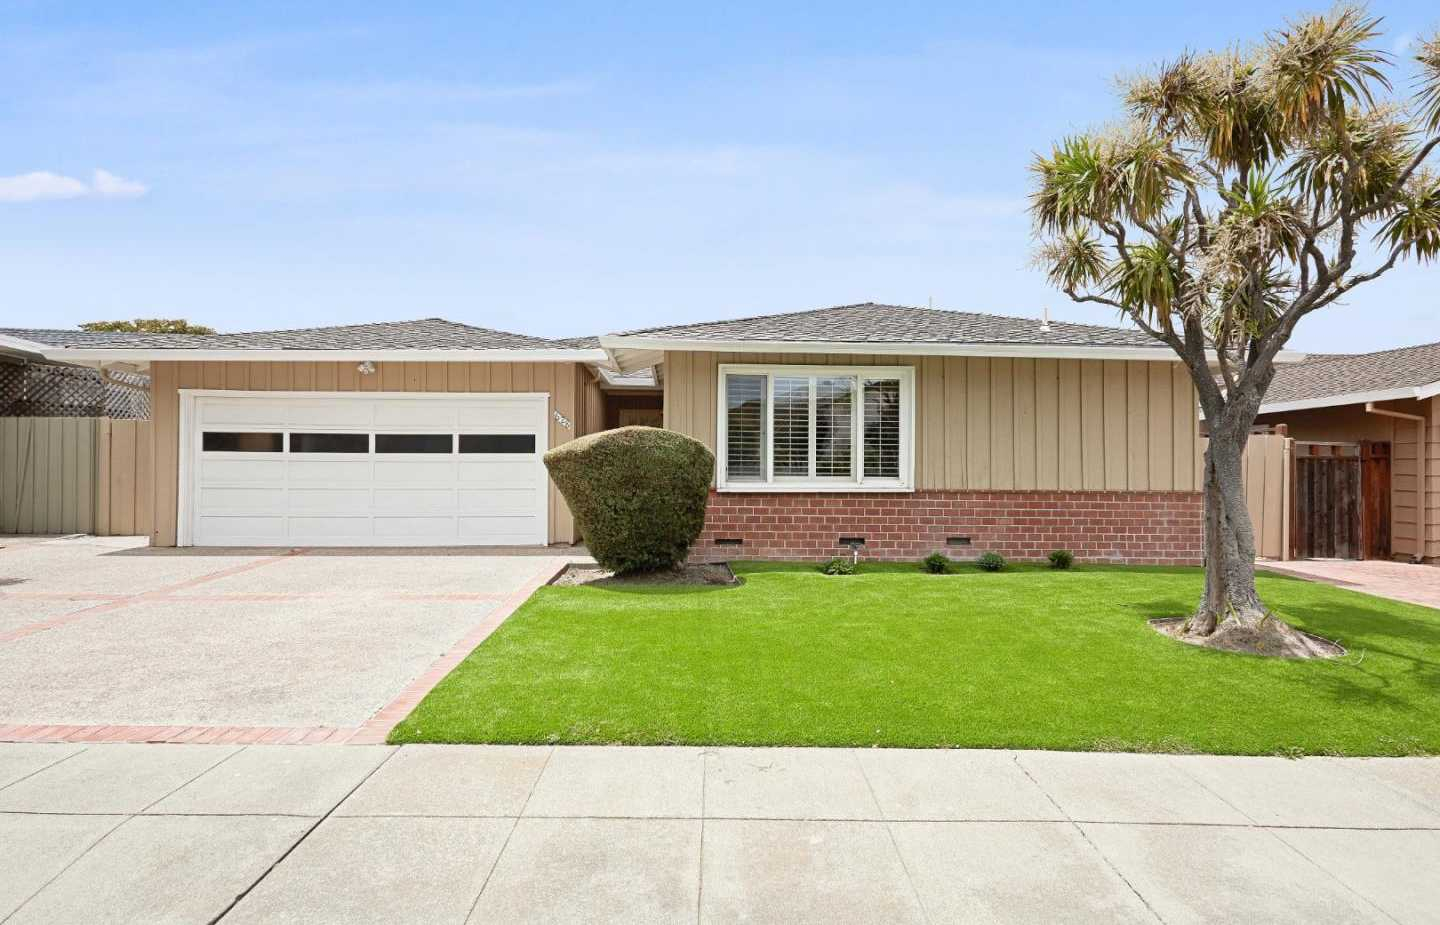 $1,699,000 - 5Br/2Ba -  for Sale in Foster City